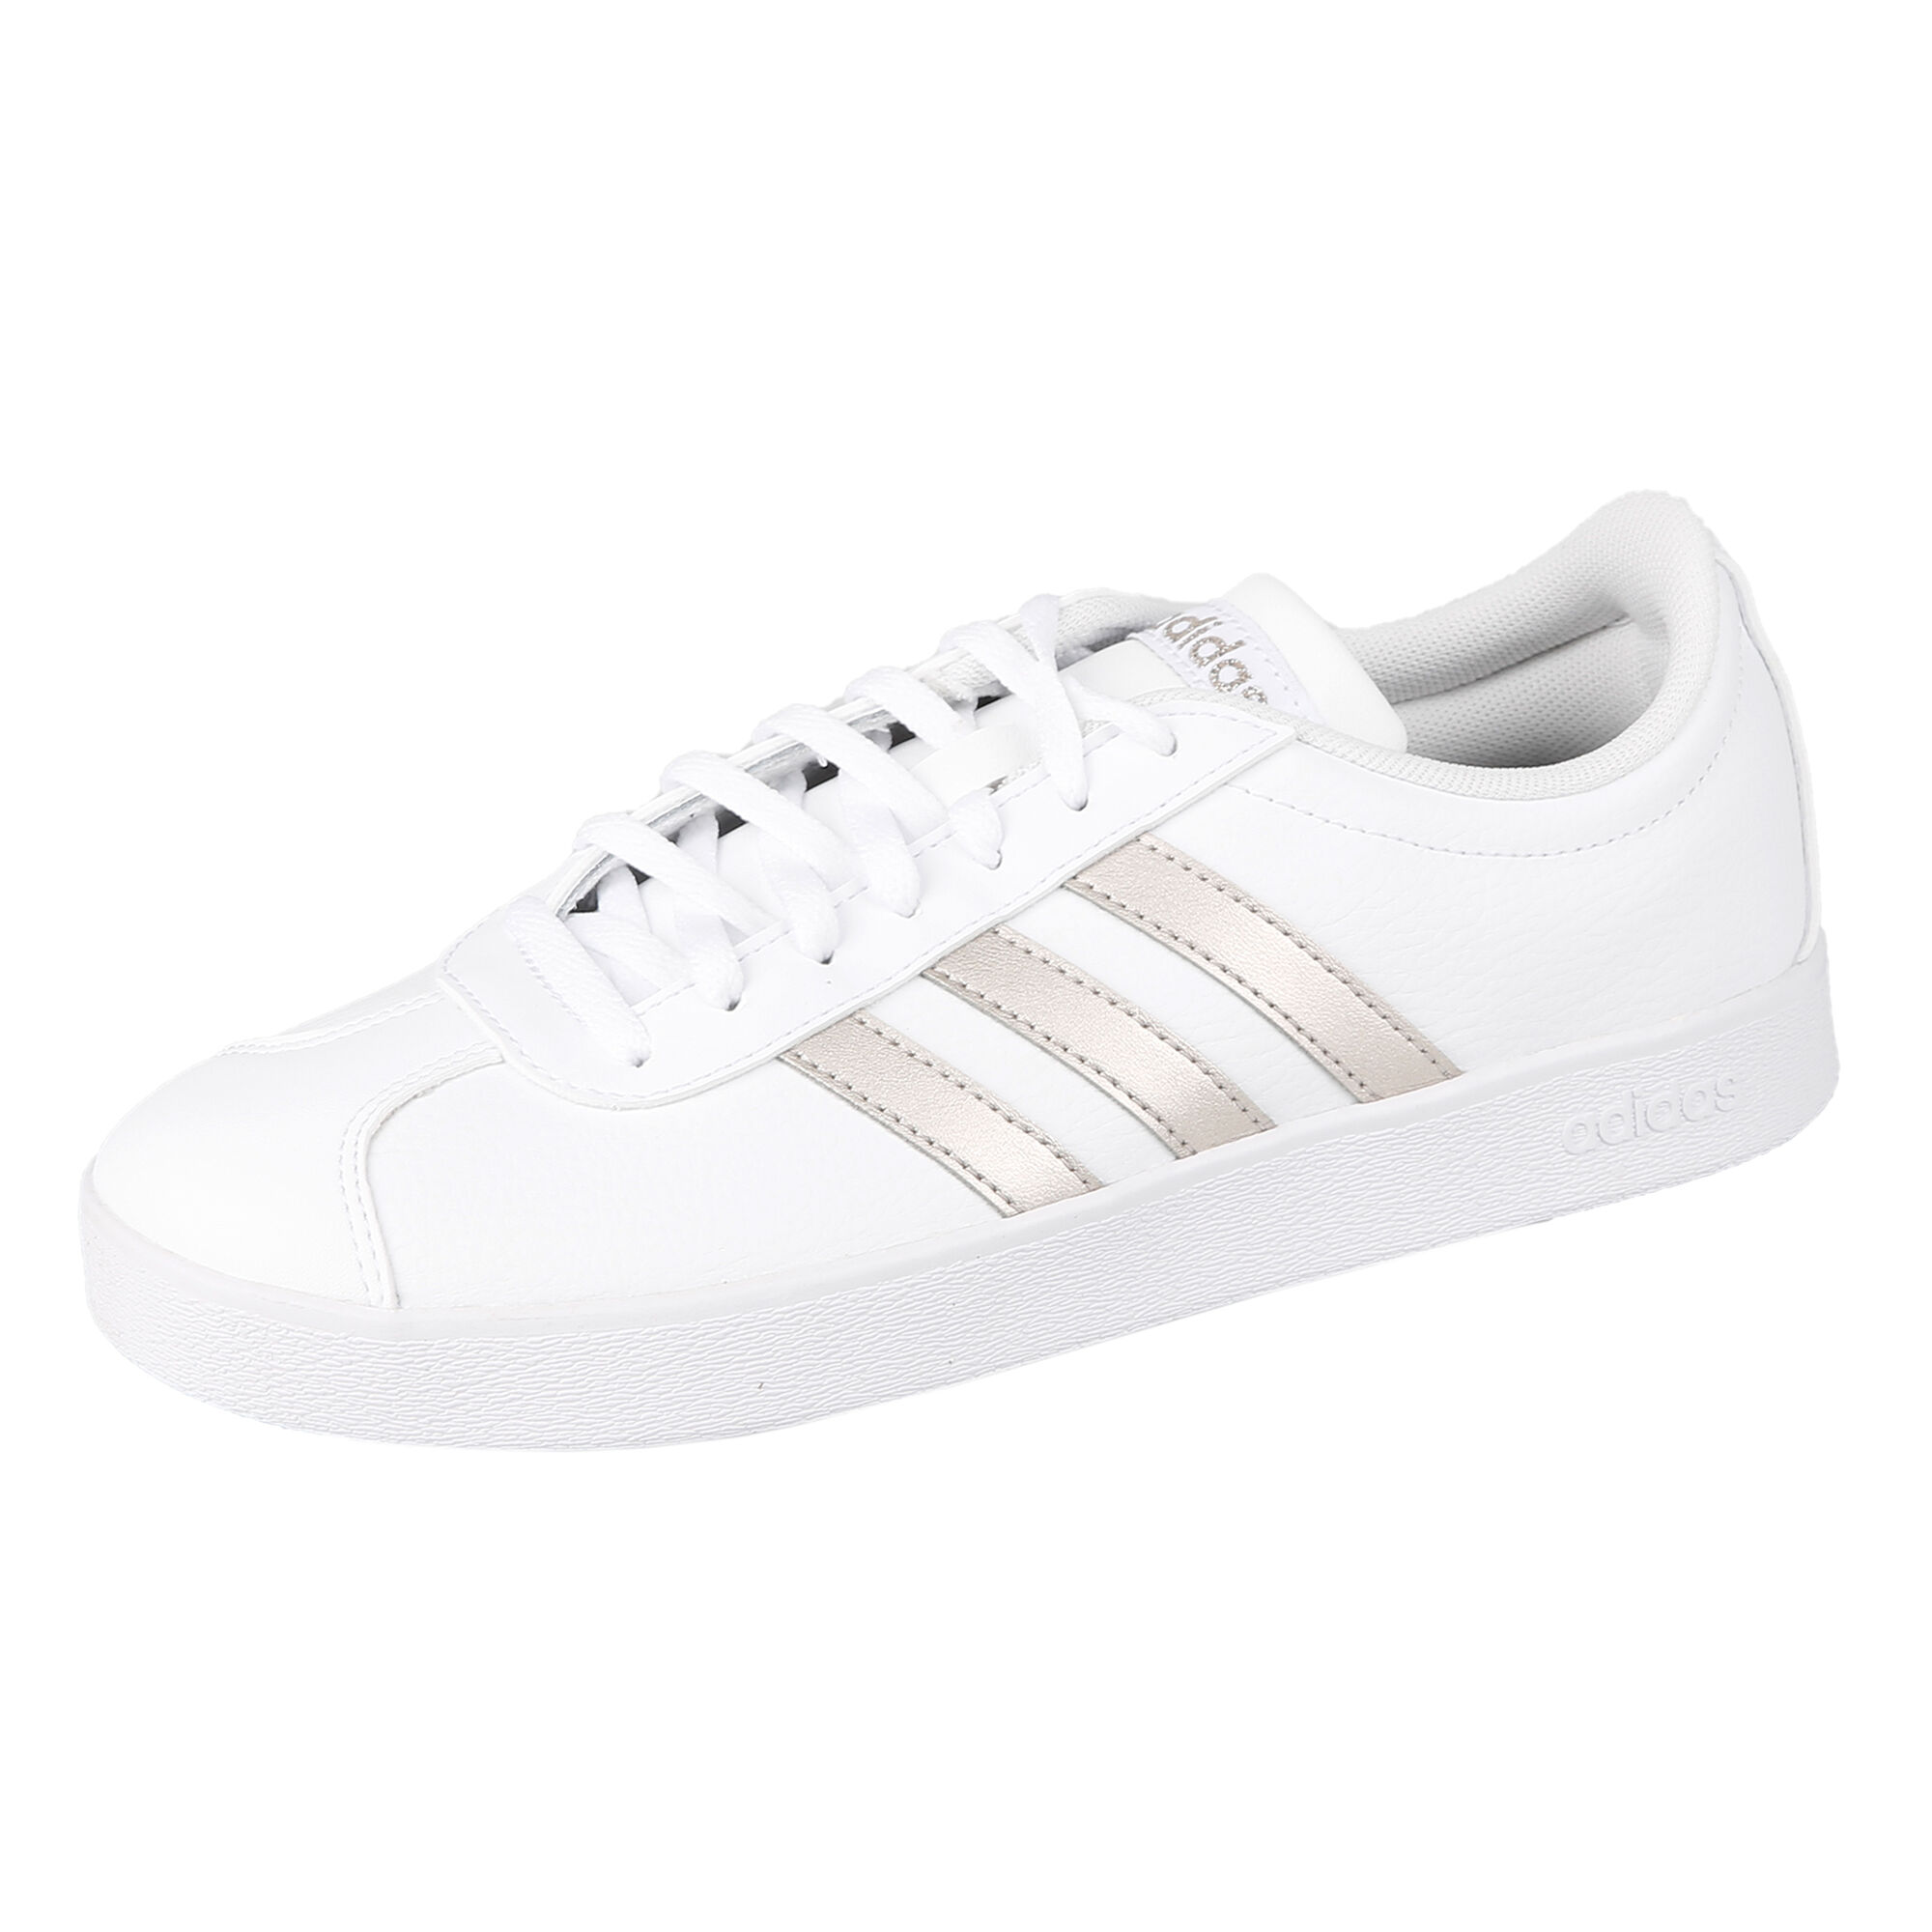 corrupción Zoológico de noche lema  buy adidas VL Court 2.0 Sneakers Women - White, Gold online | Jogging-Point